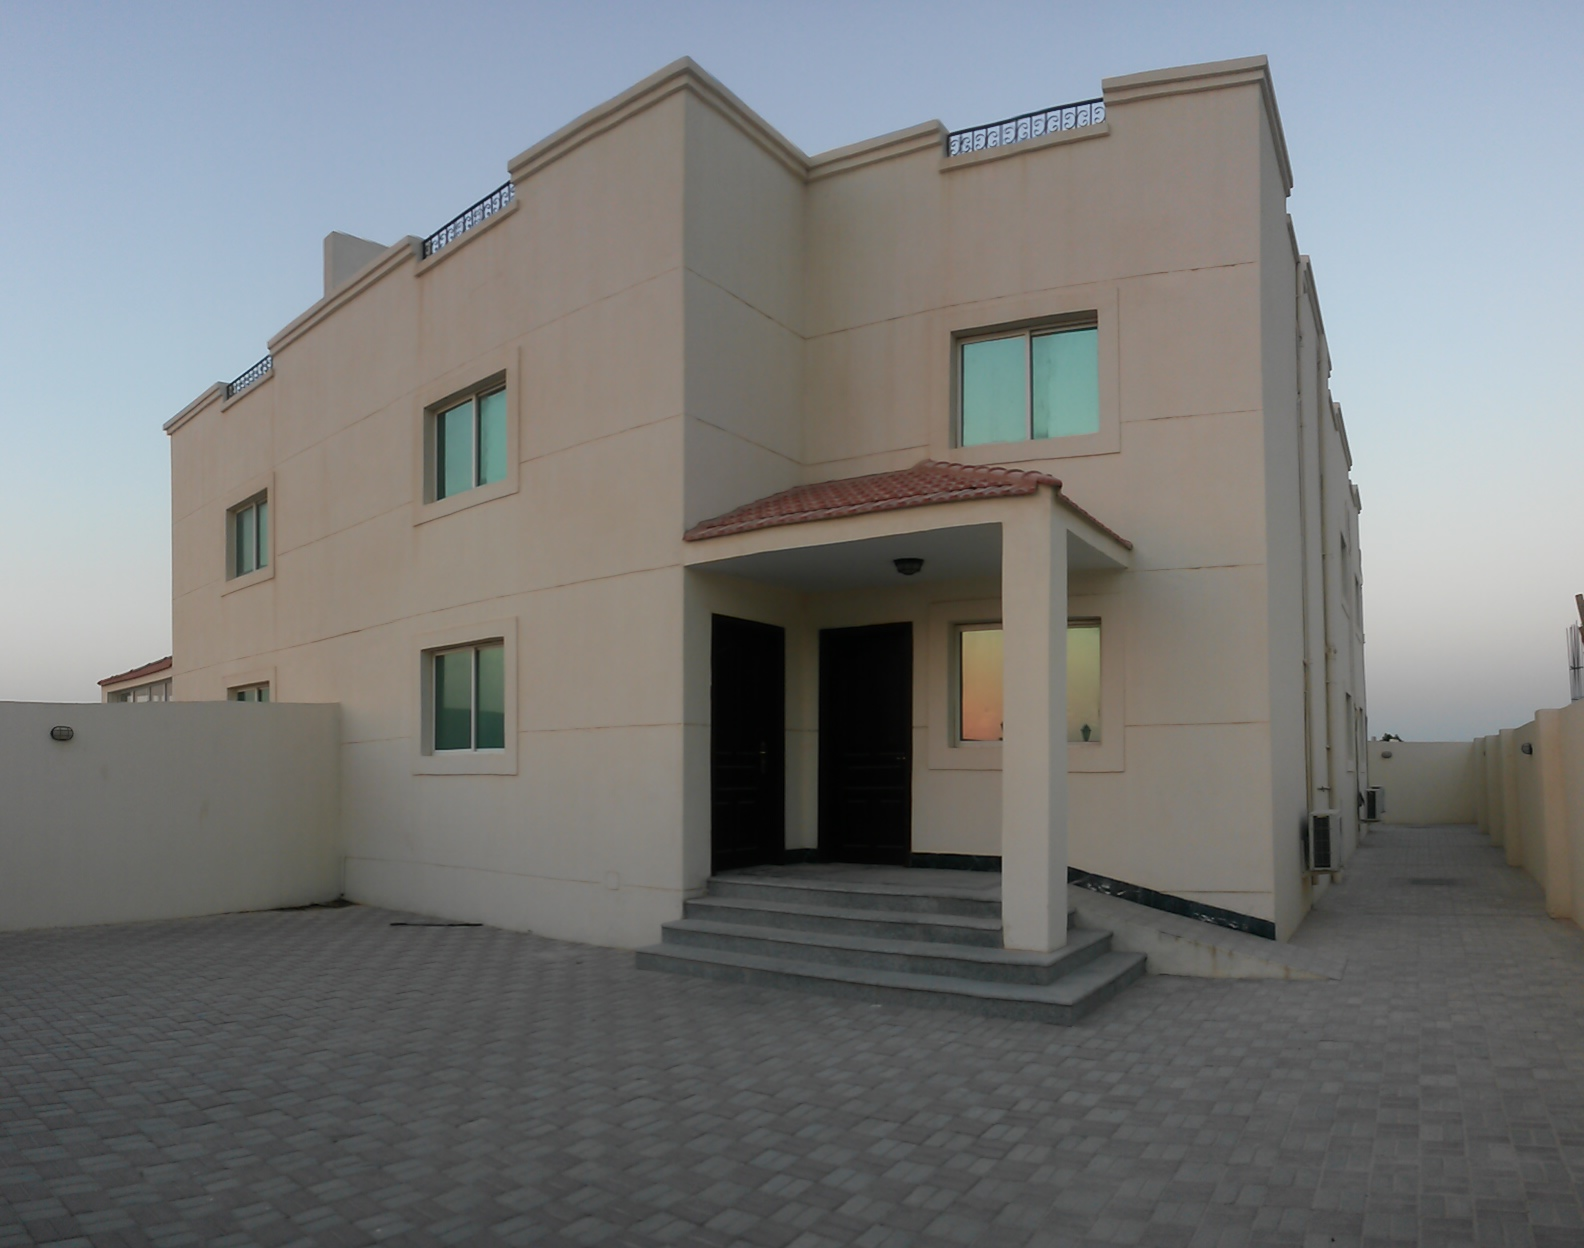 Twins Real State HOUSE VILLA FLATS FOR RENT IN DOHA